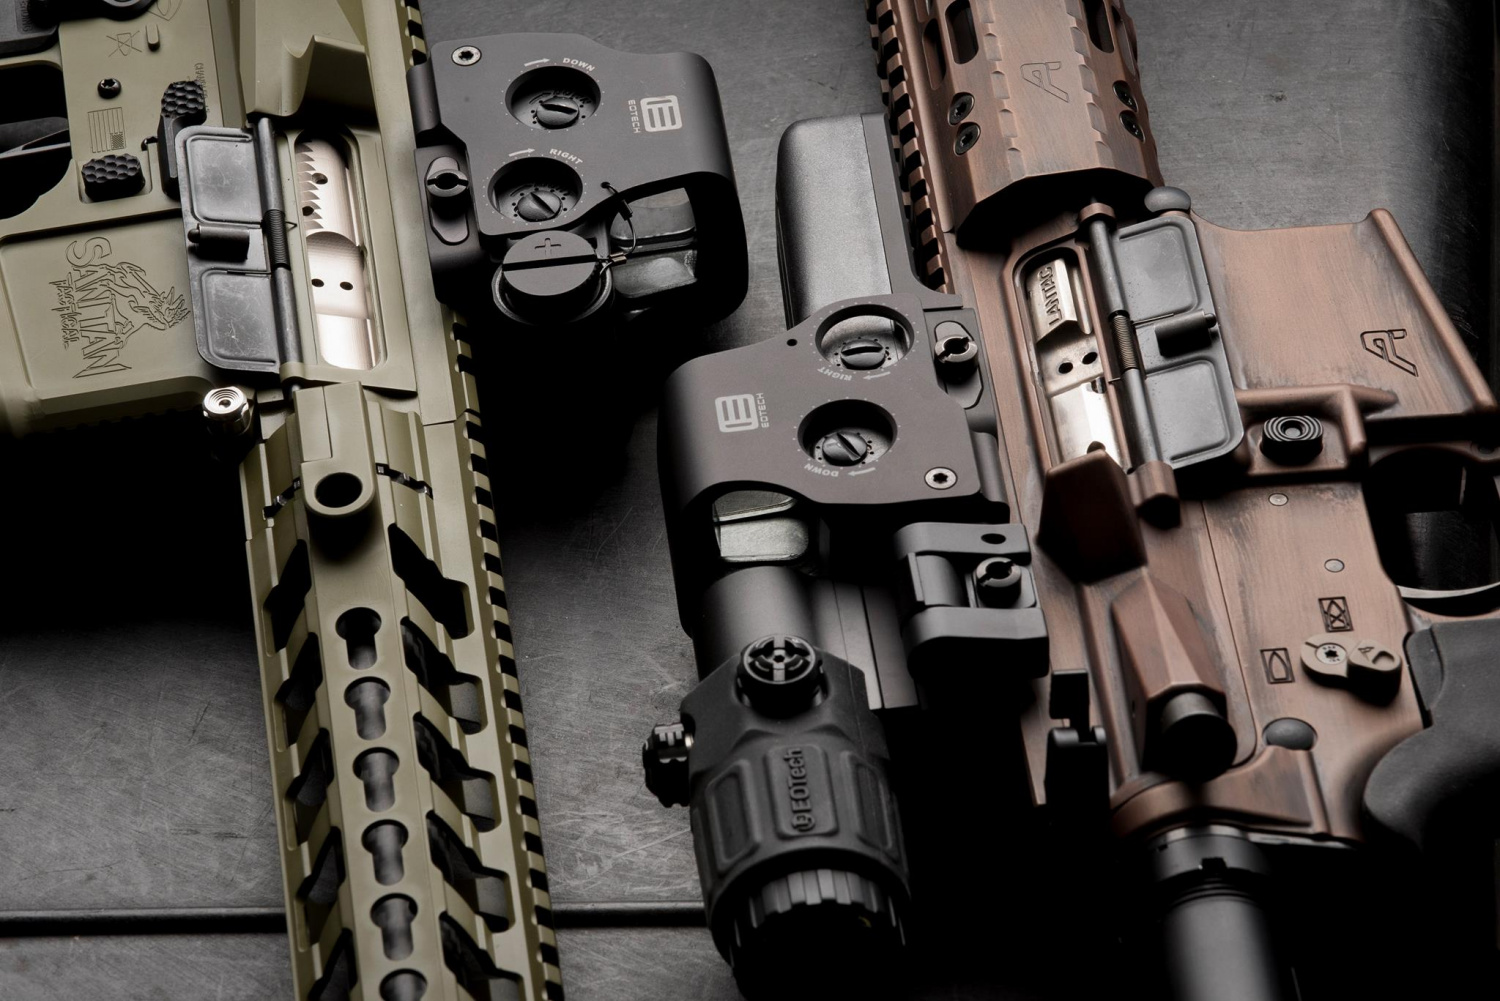 EOTECH's Holographic Weapon Sights have been a staple of the optics industry for years.